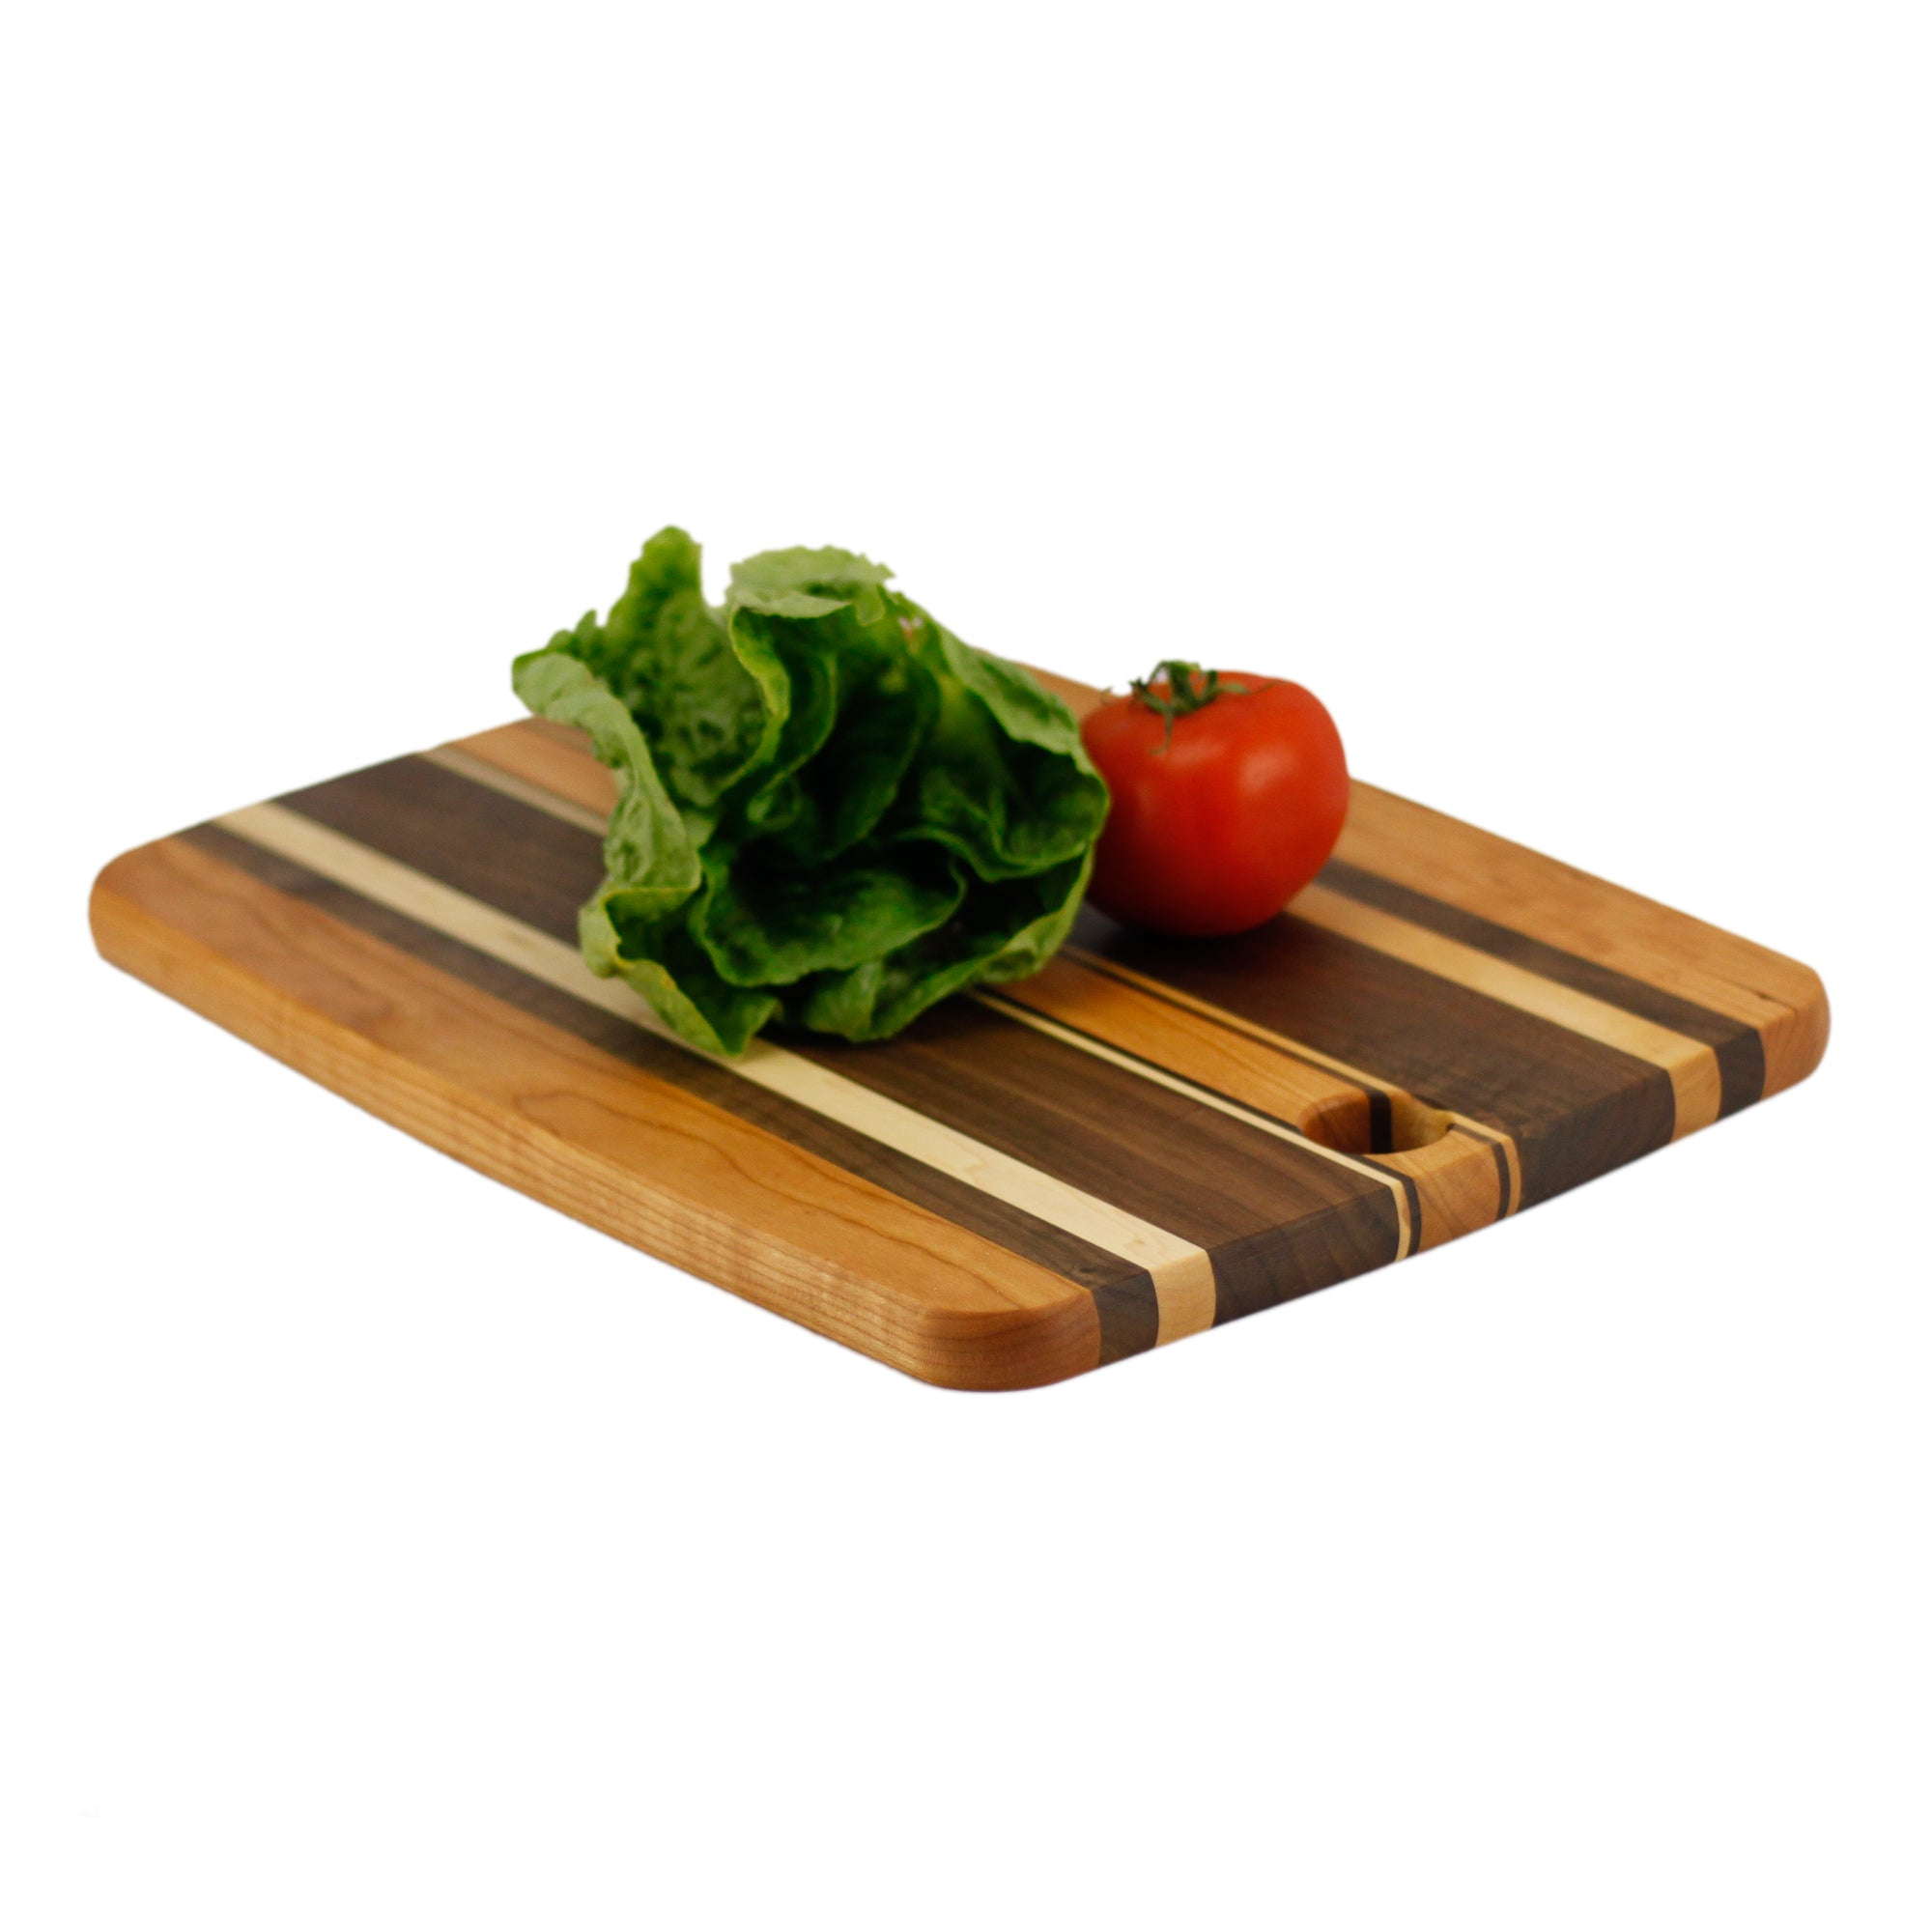 Mixed Hardwoods - Cutting Board - Serving and Cutting Board - 11